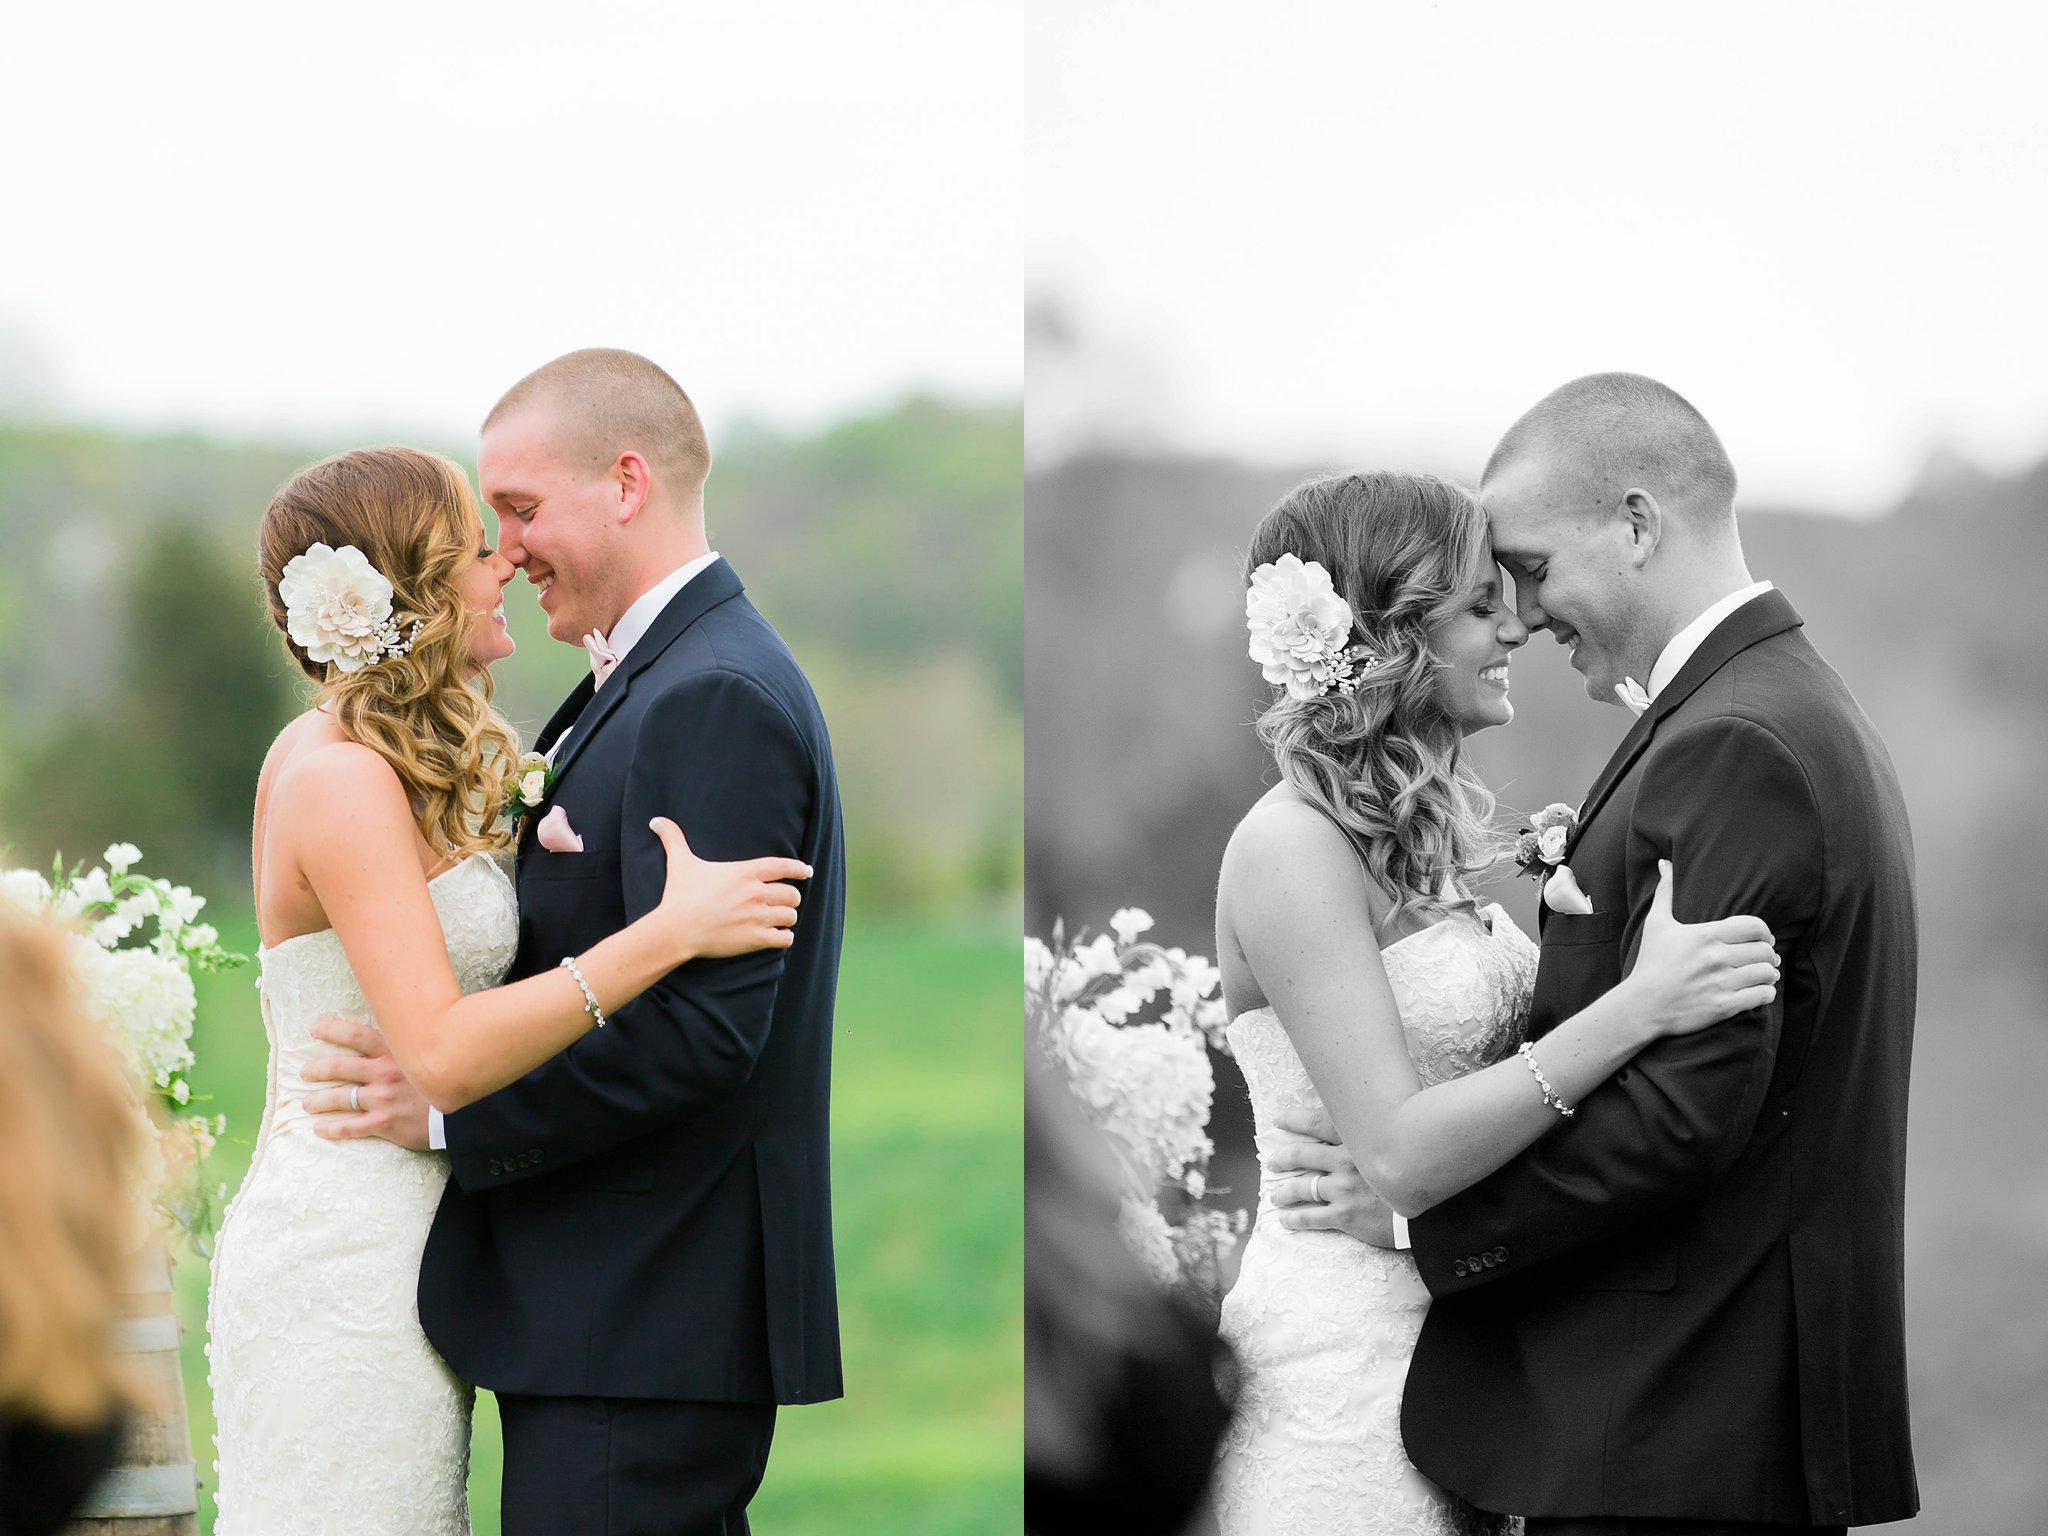 Spring Hill Manor Wedding Photos Maryland Wedding Photographer-147.jpg